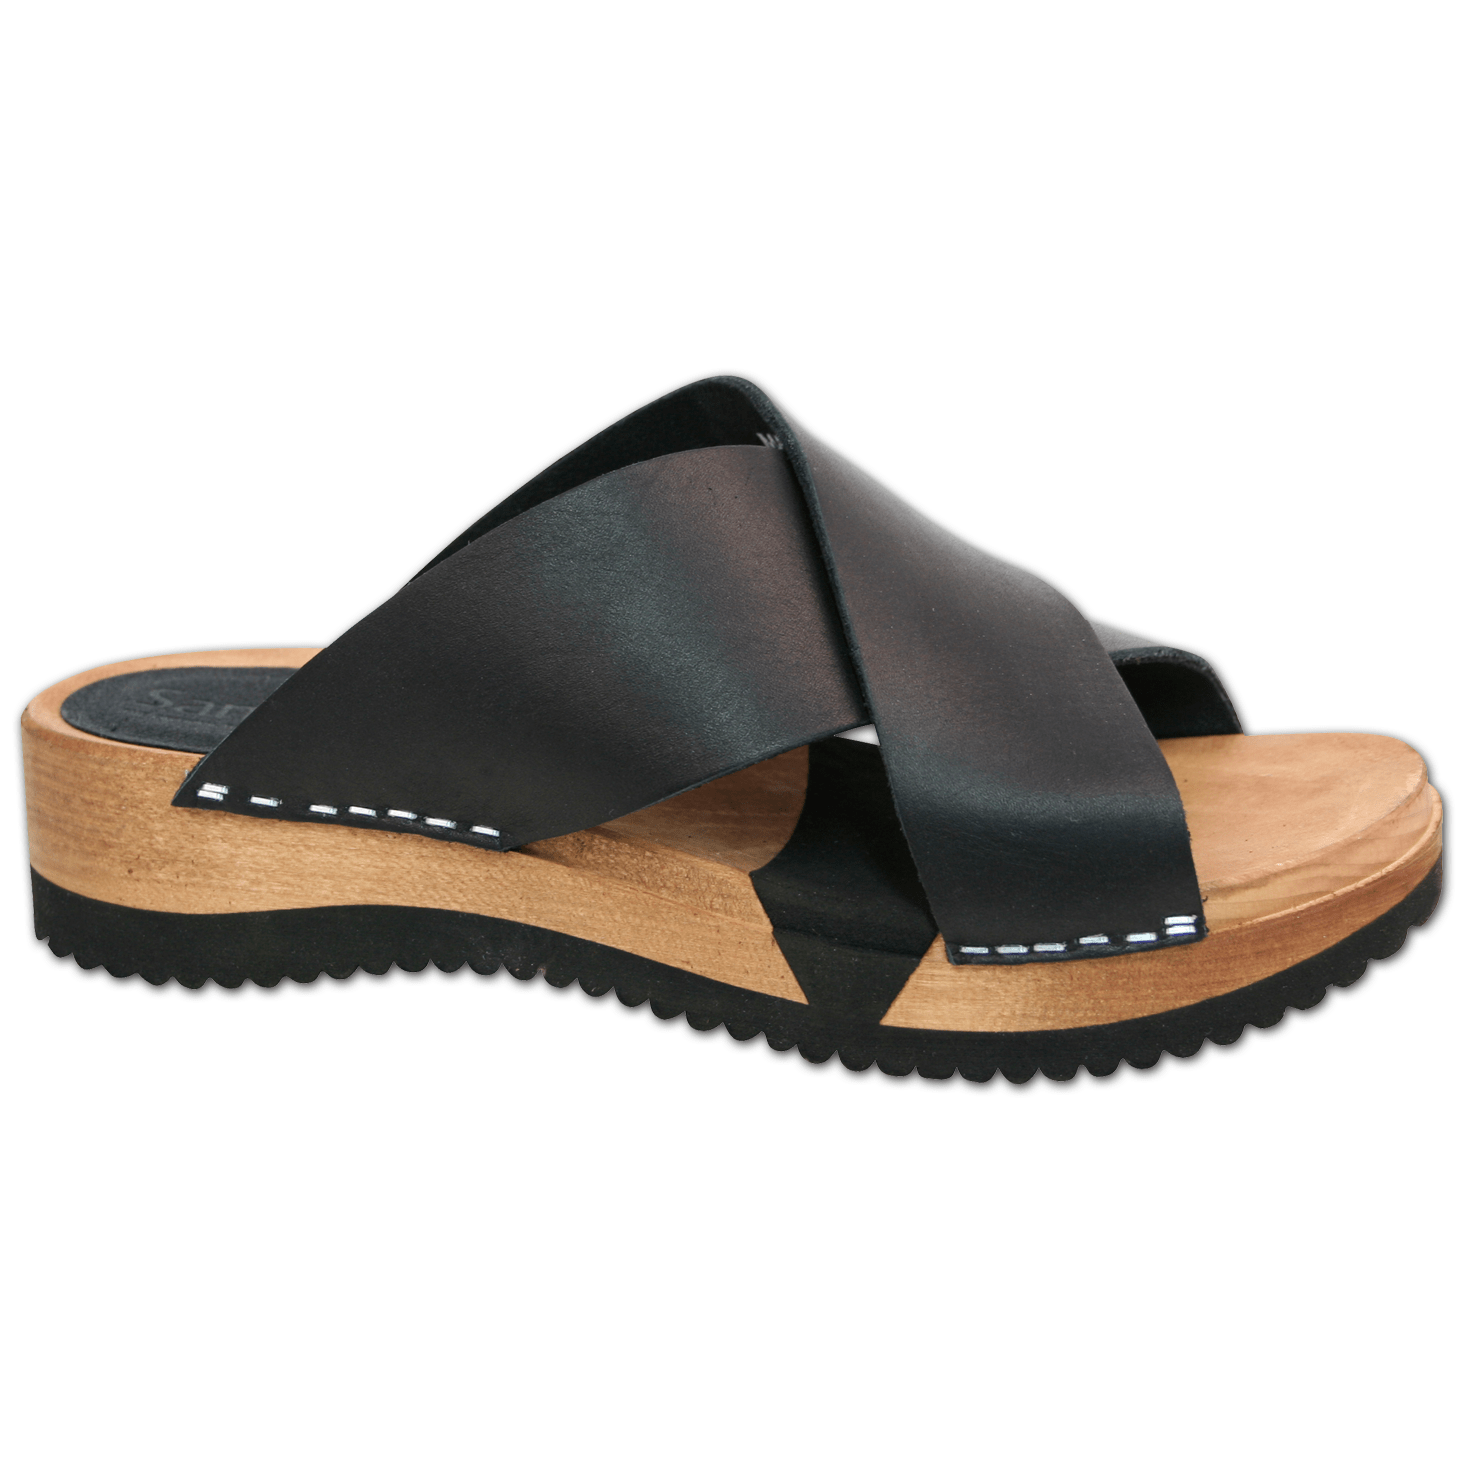 Sanita Tida Women's in Black Sandal